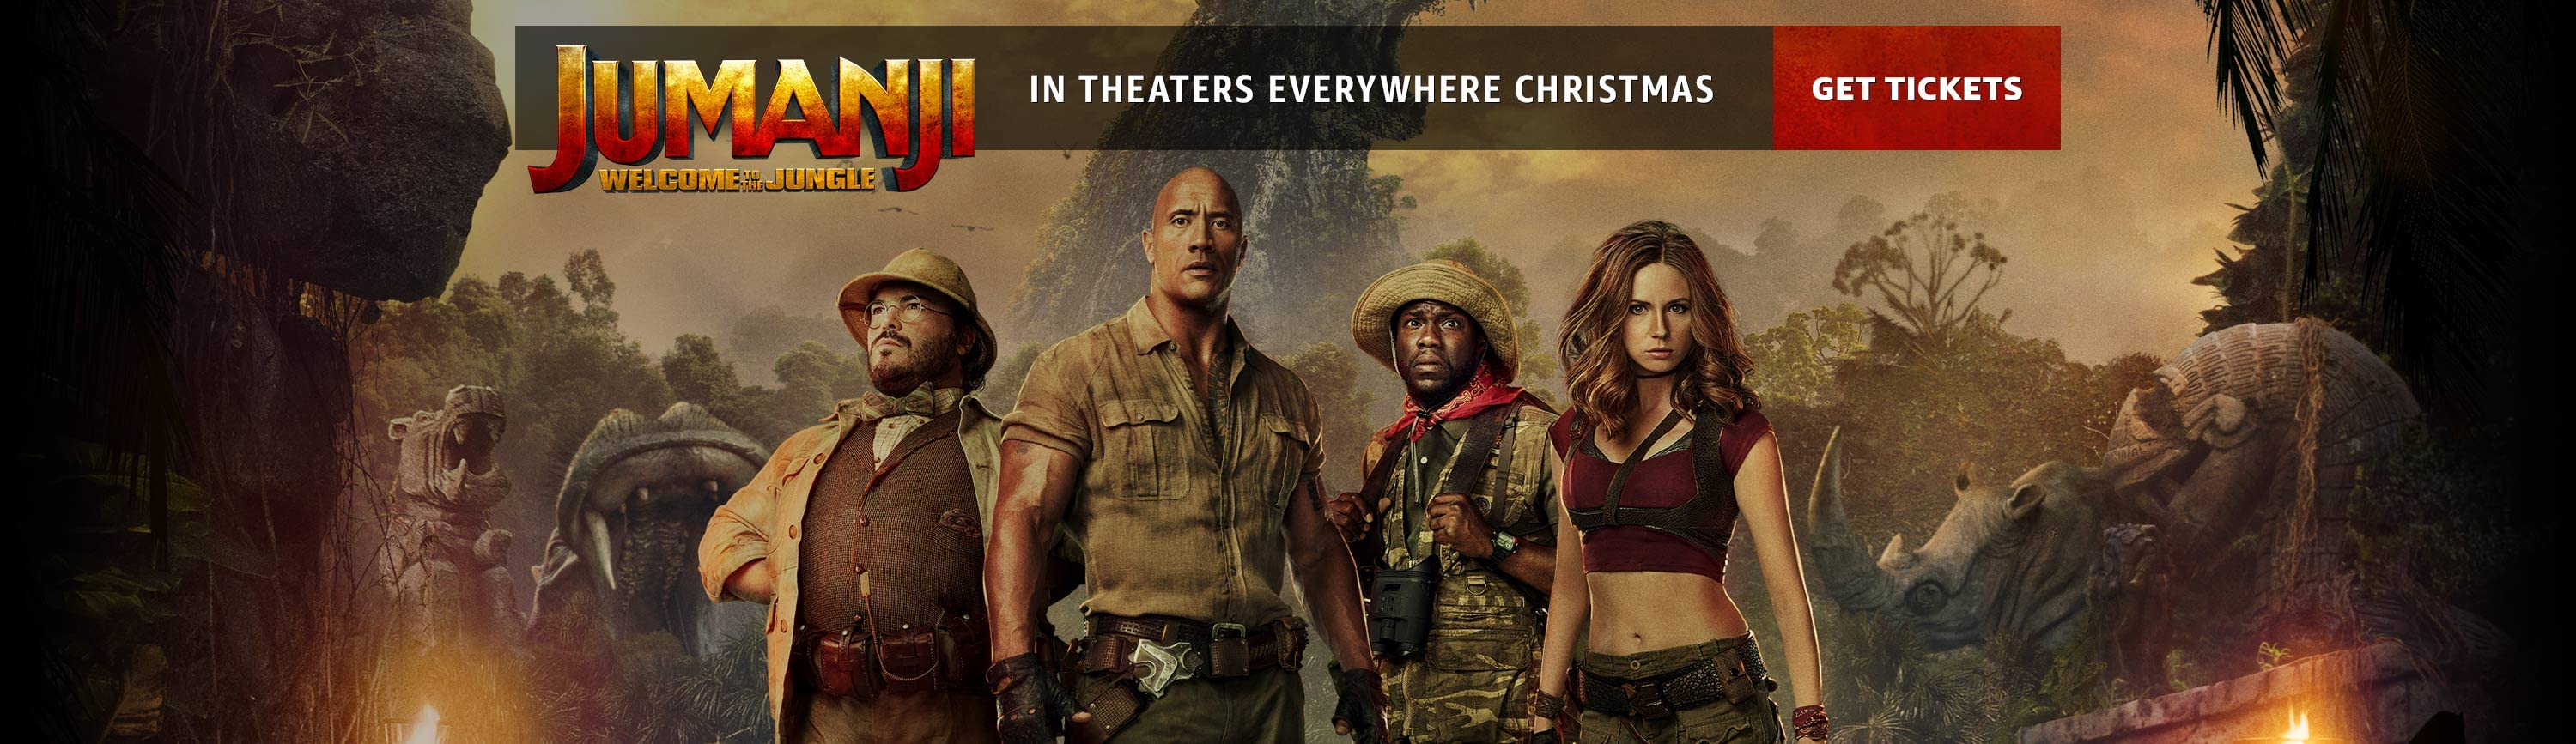 Jumanji: Welcome to the jungle, in theaters everywhere Christmas.